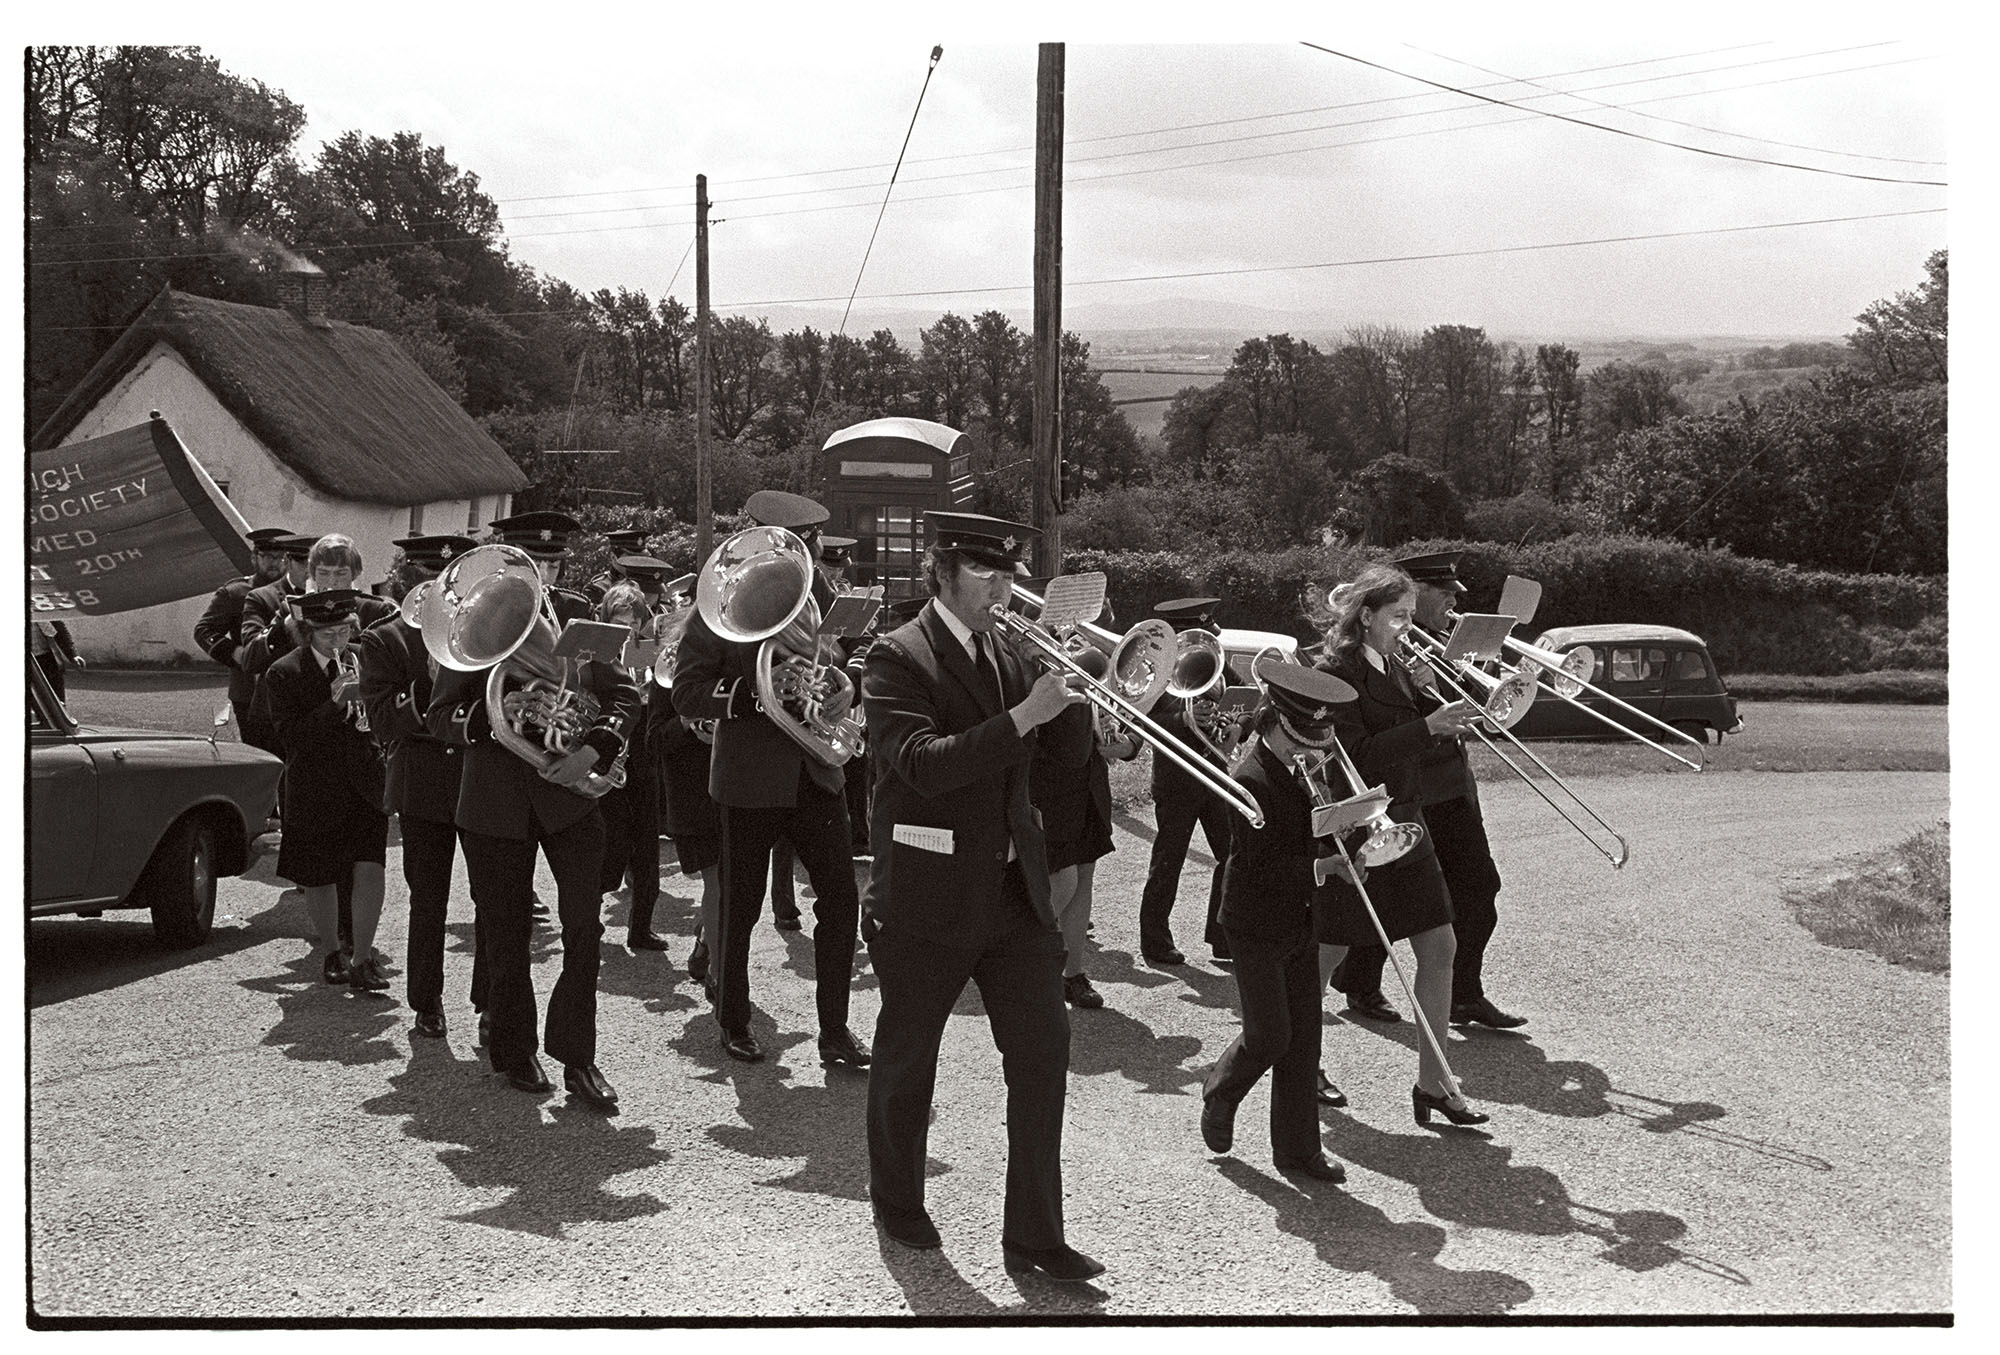 Friendly Society start of parade with Silver Band.<br /> [Hatherleigh Silver Band marching up a road in Iddesleigh for Iddesleigh Club Day. People holding the Iddesleigh Friendly Society banner are following them.]